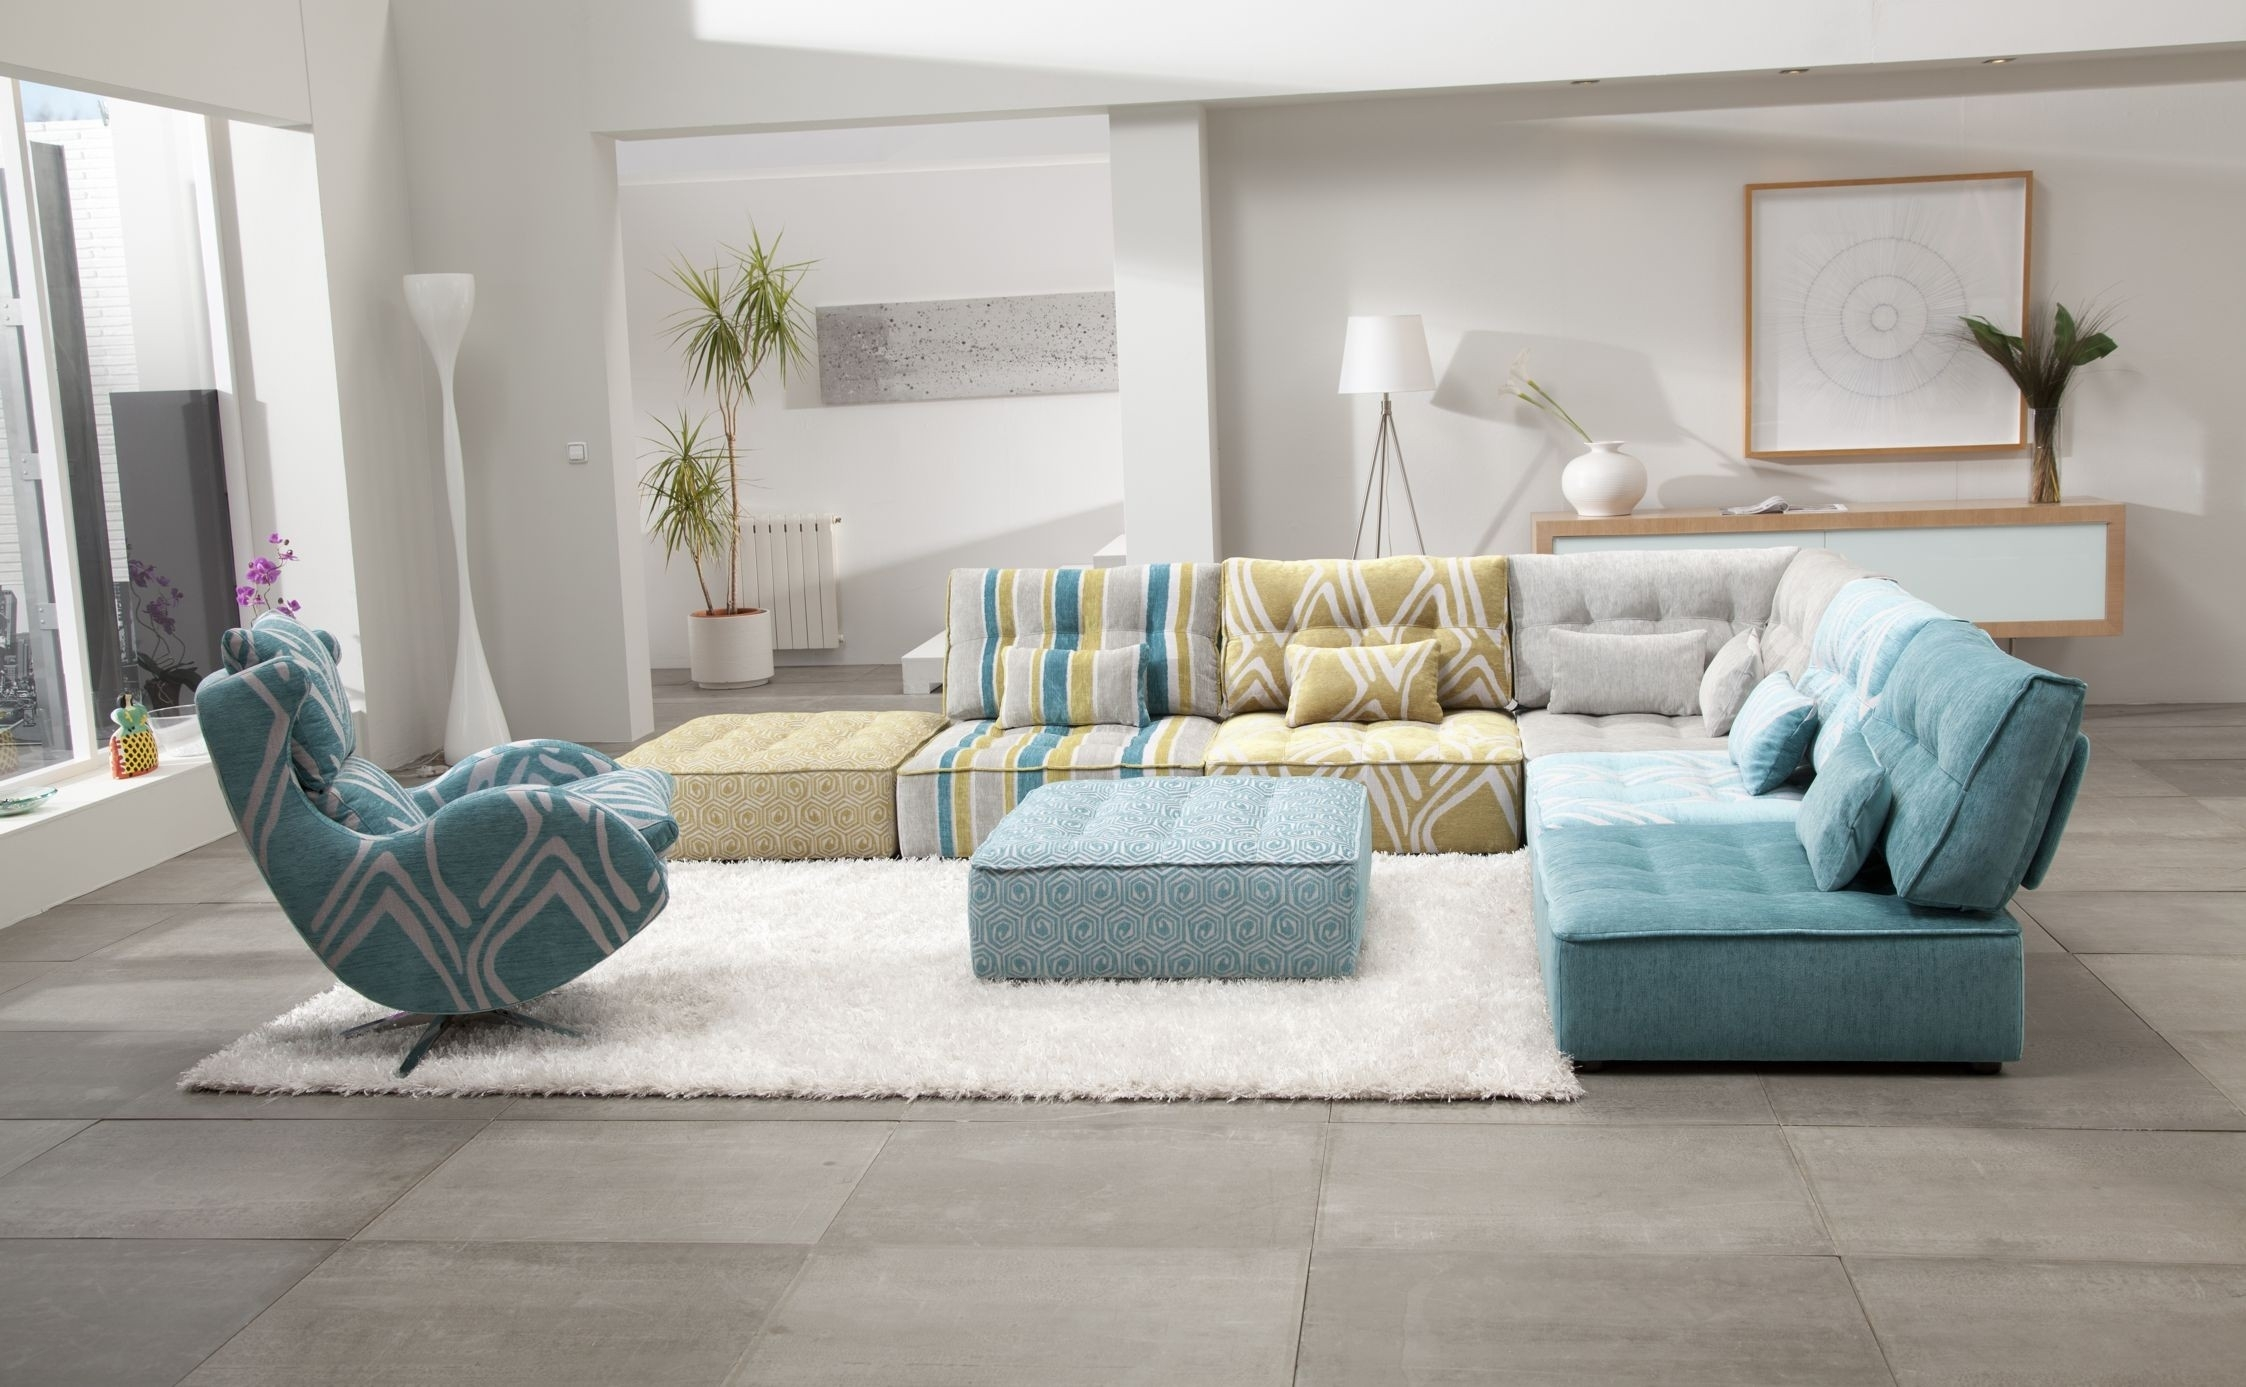 Arianne Modern Modular Sectional Sofa | Fama Sofas Throughout Modular Sectional Sofas (View 6 of 10)